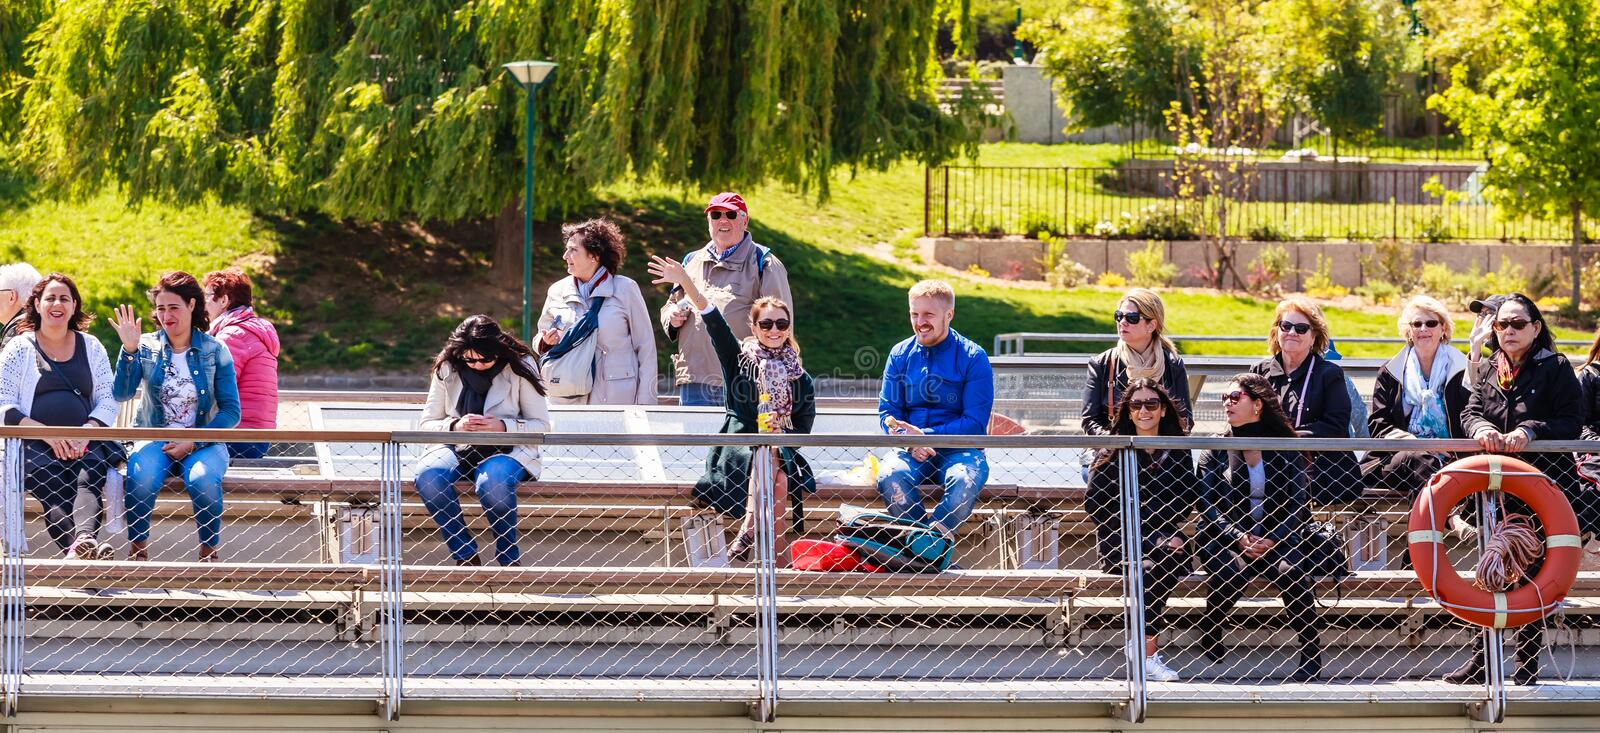 Tourists on decka tourist boat made salutation royalty free stock images